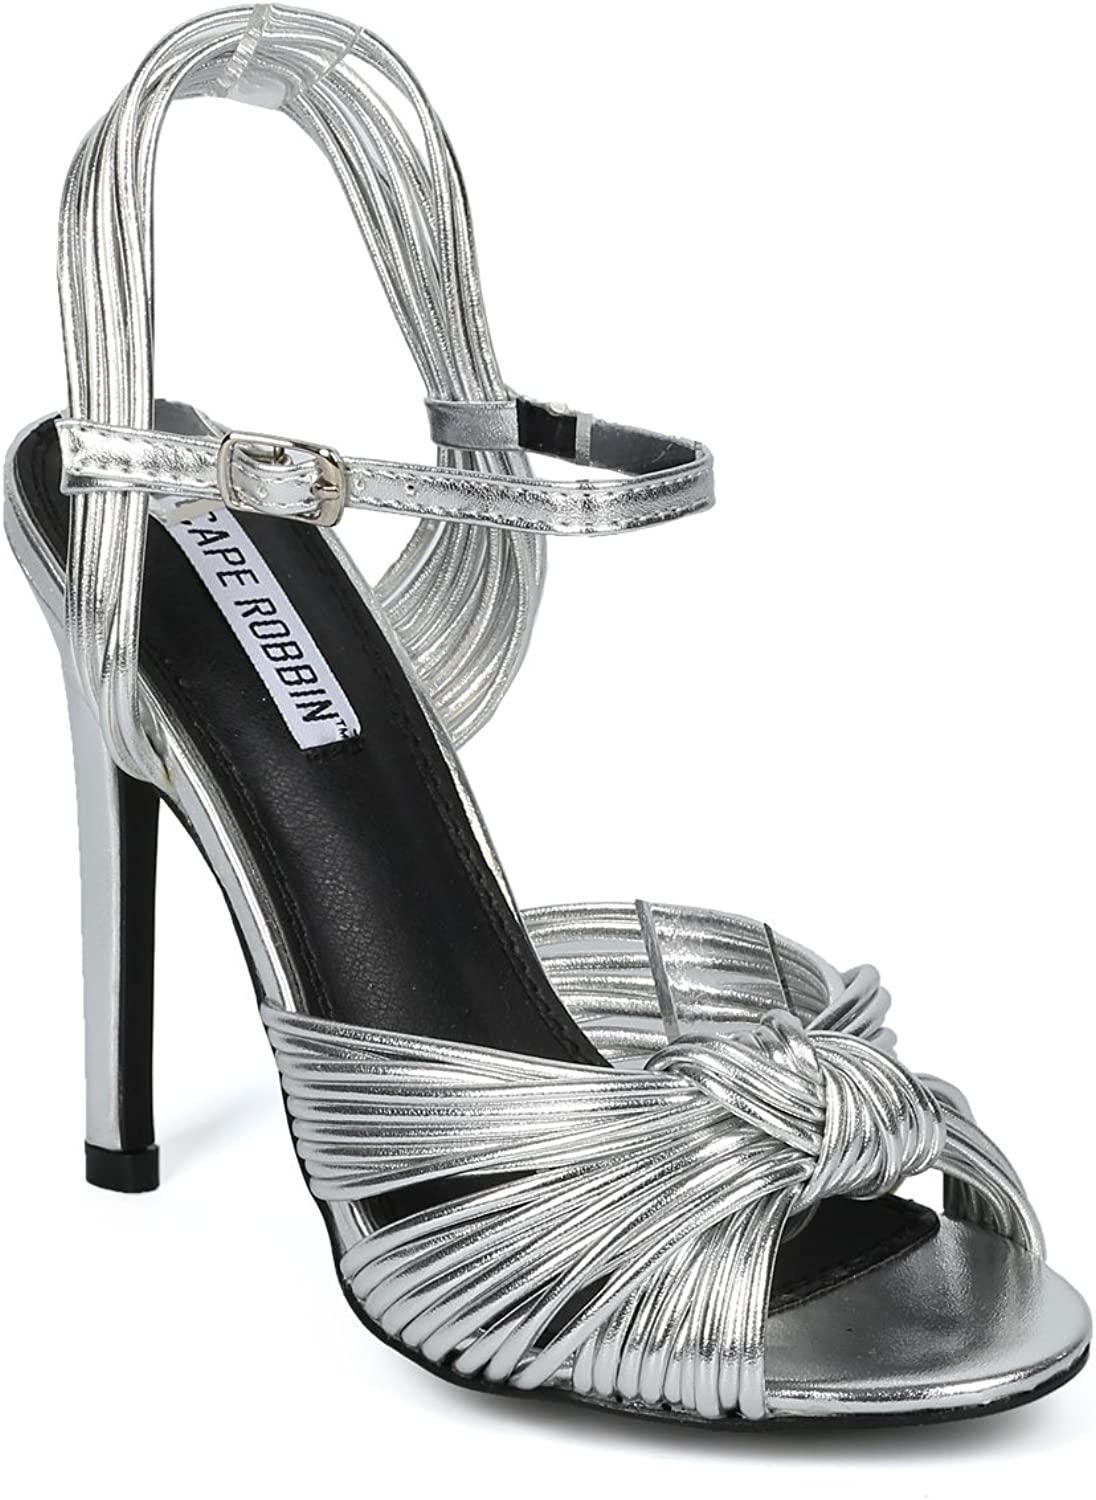 Alrisco Women Peep Toe Knotted Ankle Strap Stiletto Sandal HF50